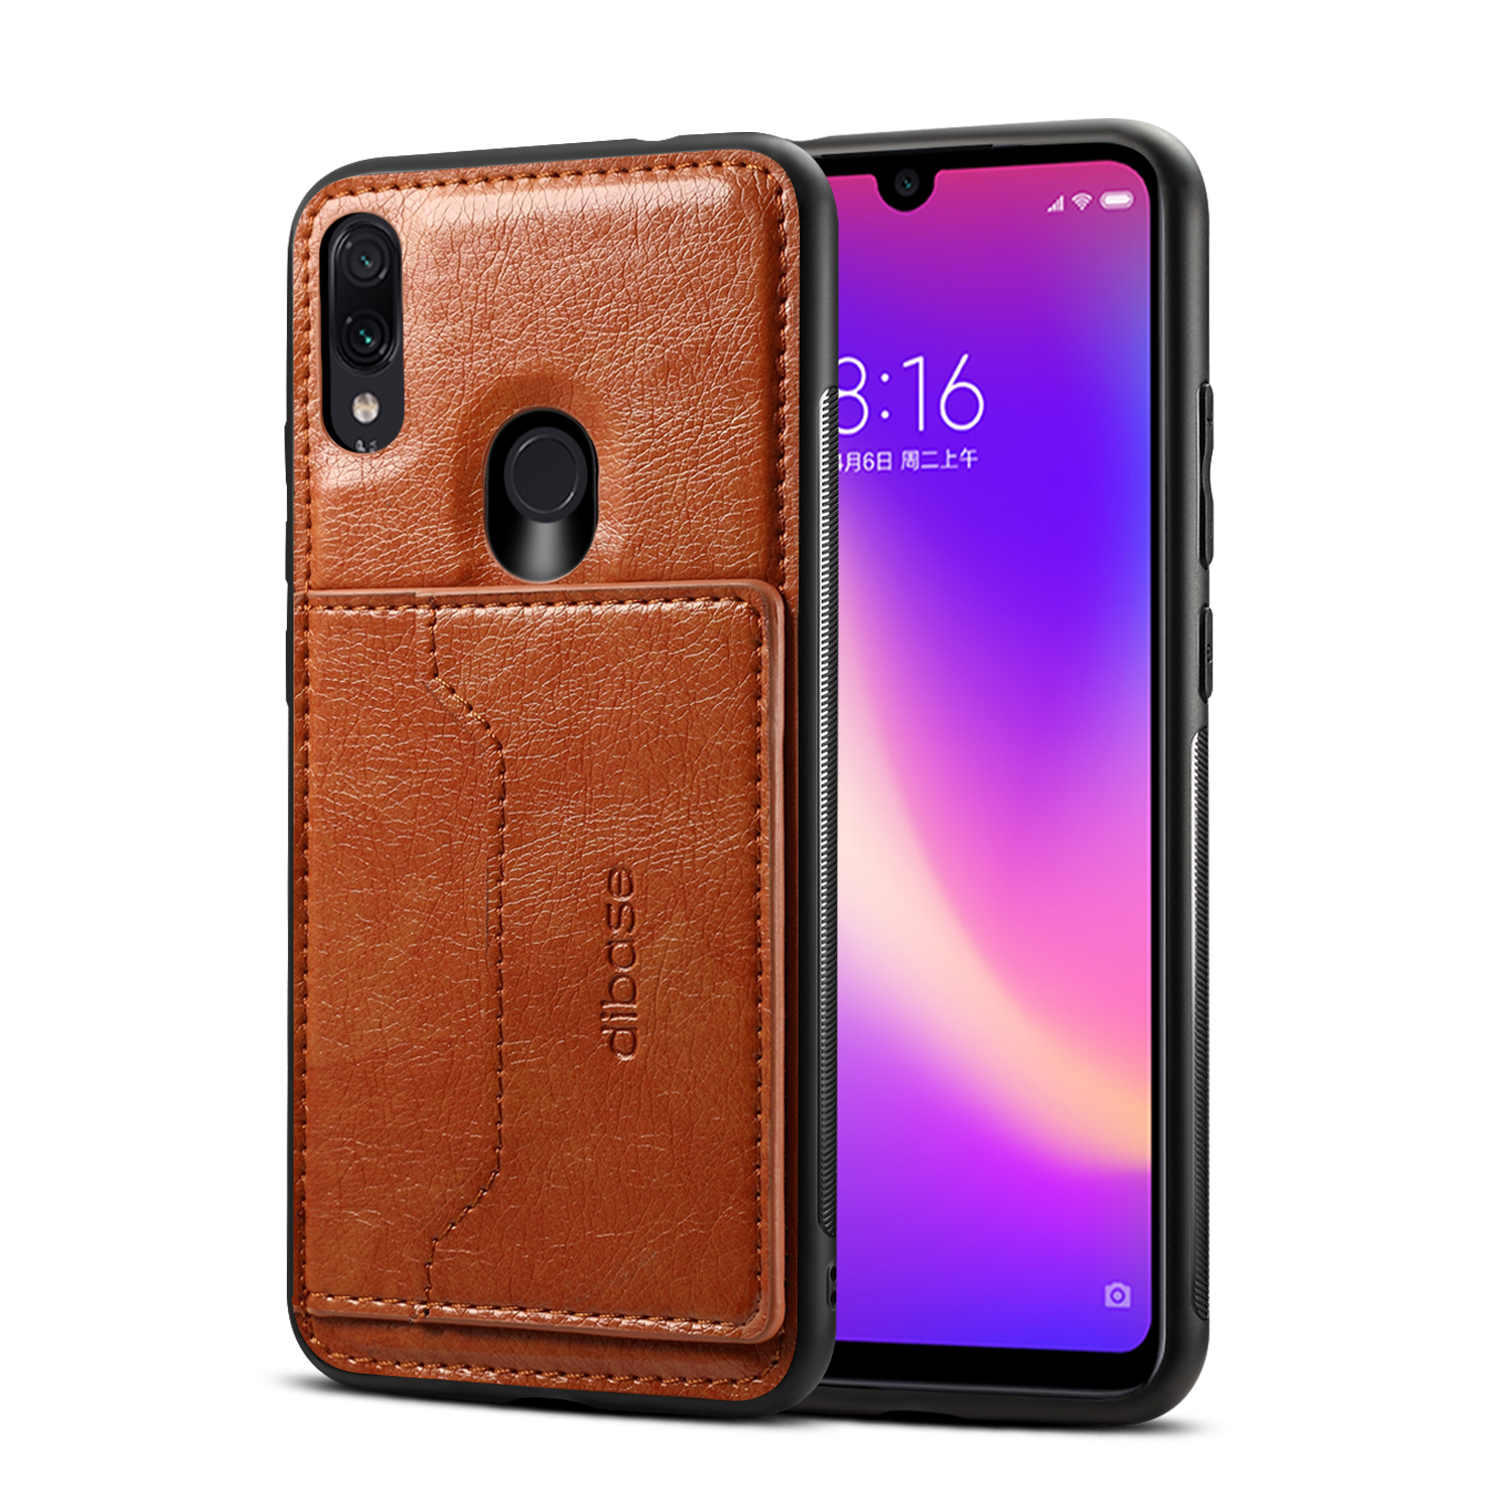 For Redmi NOTE 7 / redmi NOTE 7 pro Retro PU Leather Wallet Card Holder Stand Non-slip Shockproof Cell Phone Case brown